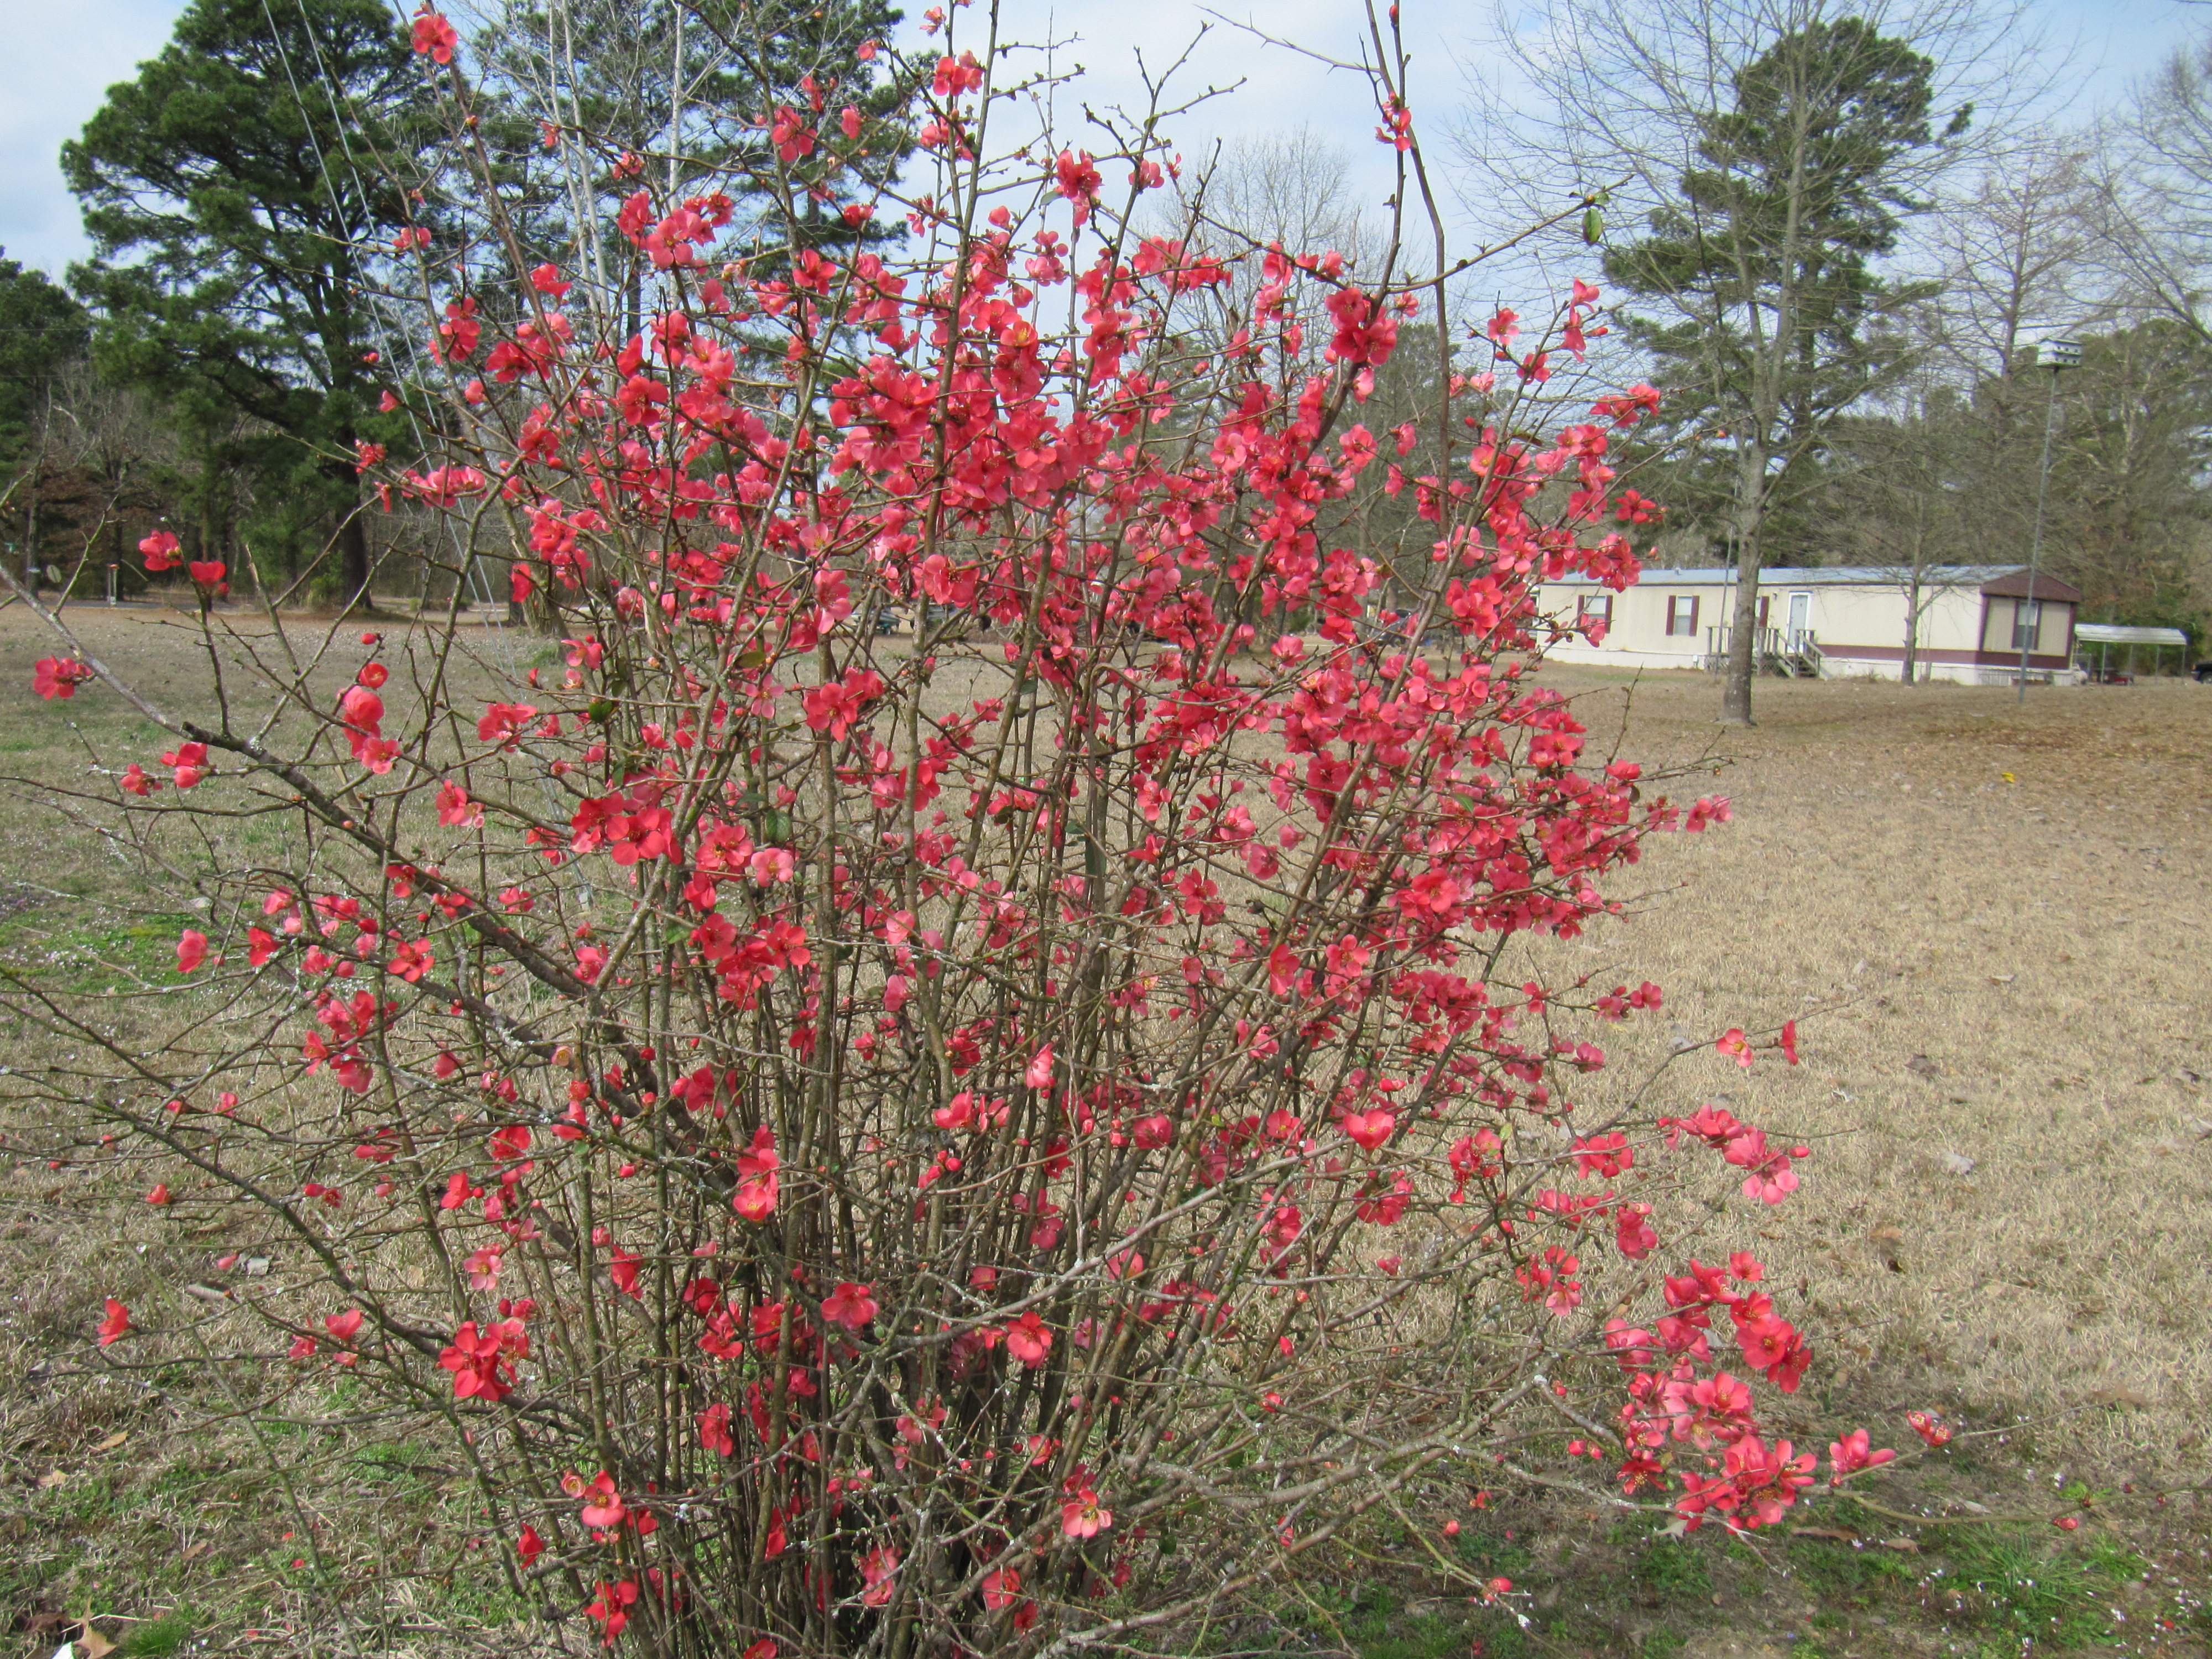 I believe this is called fire bush   make beautiful bouquets with daffodils